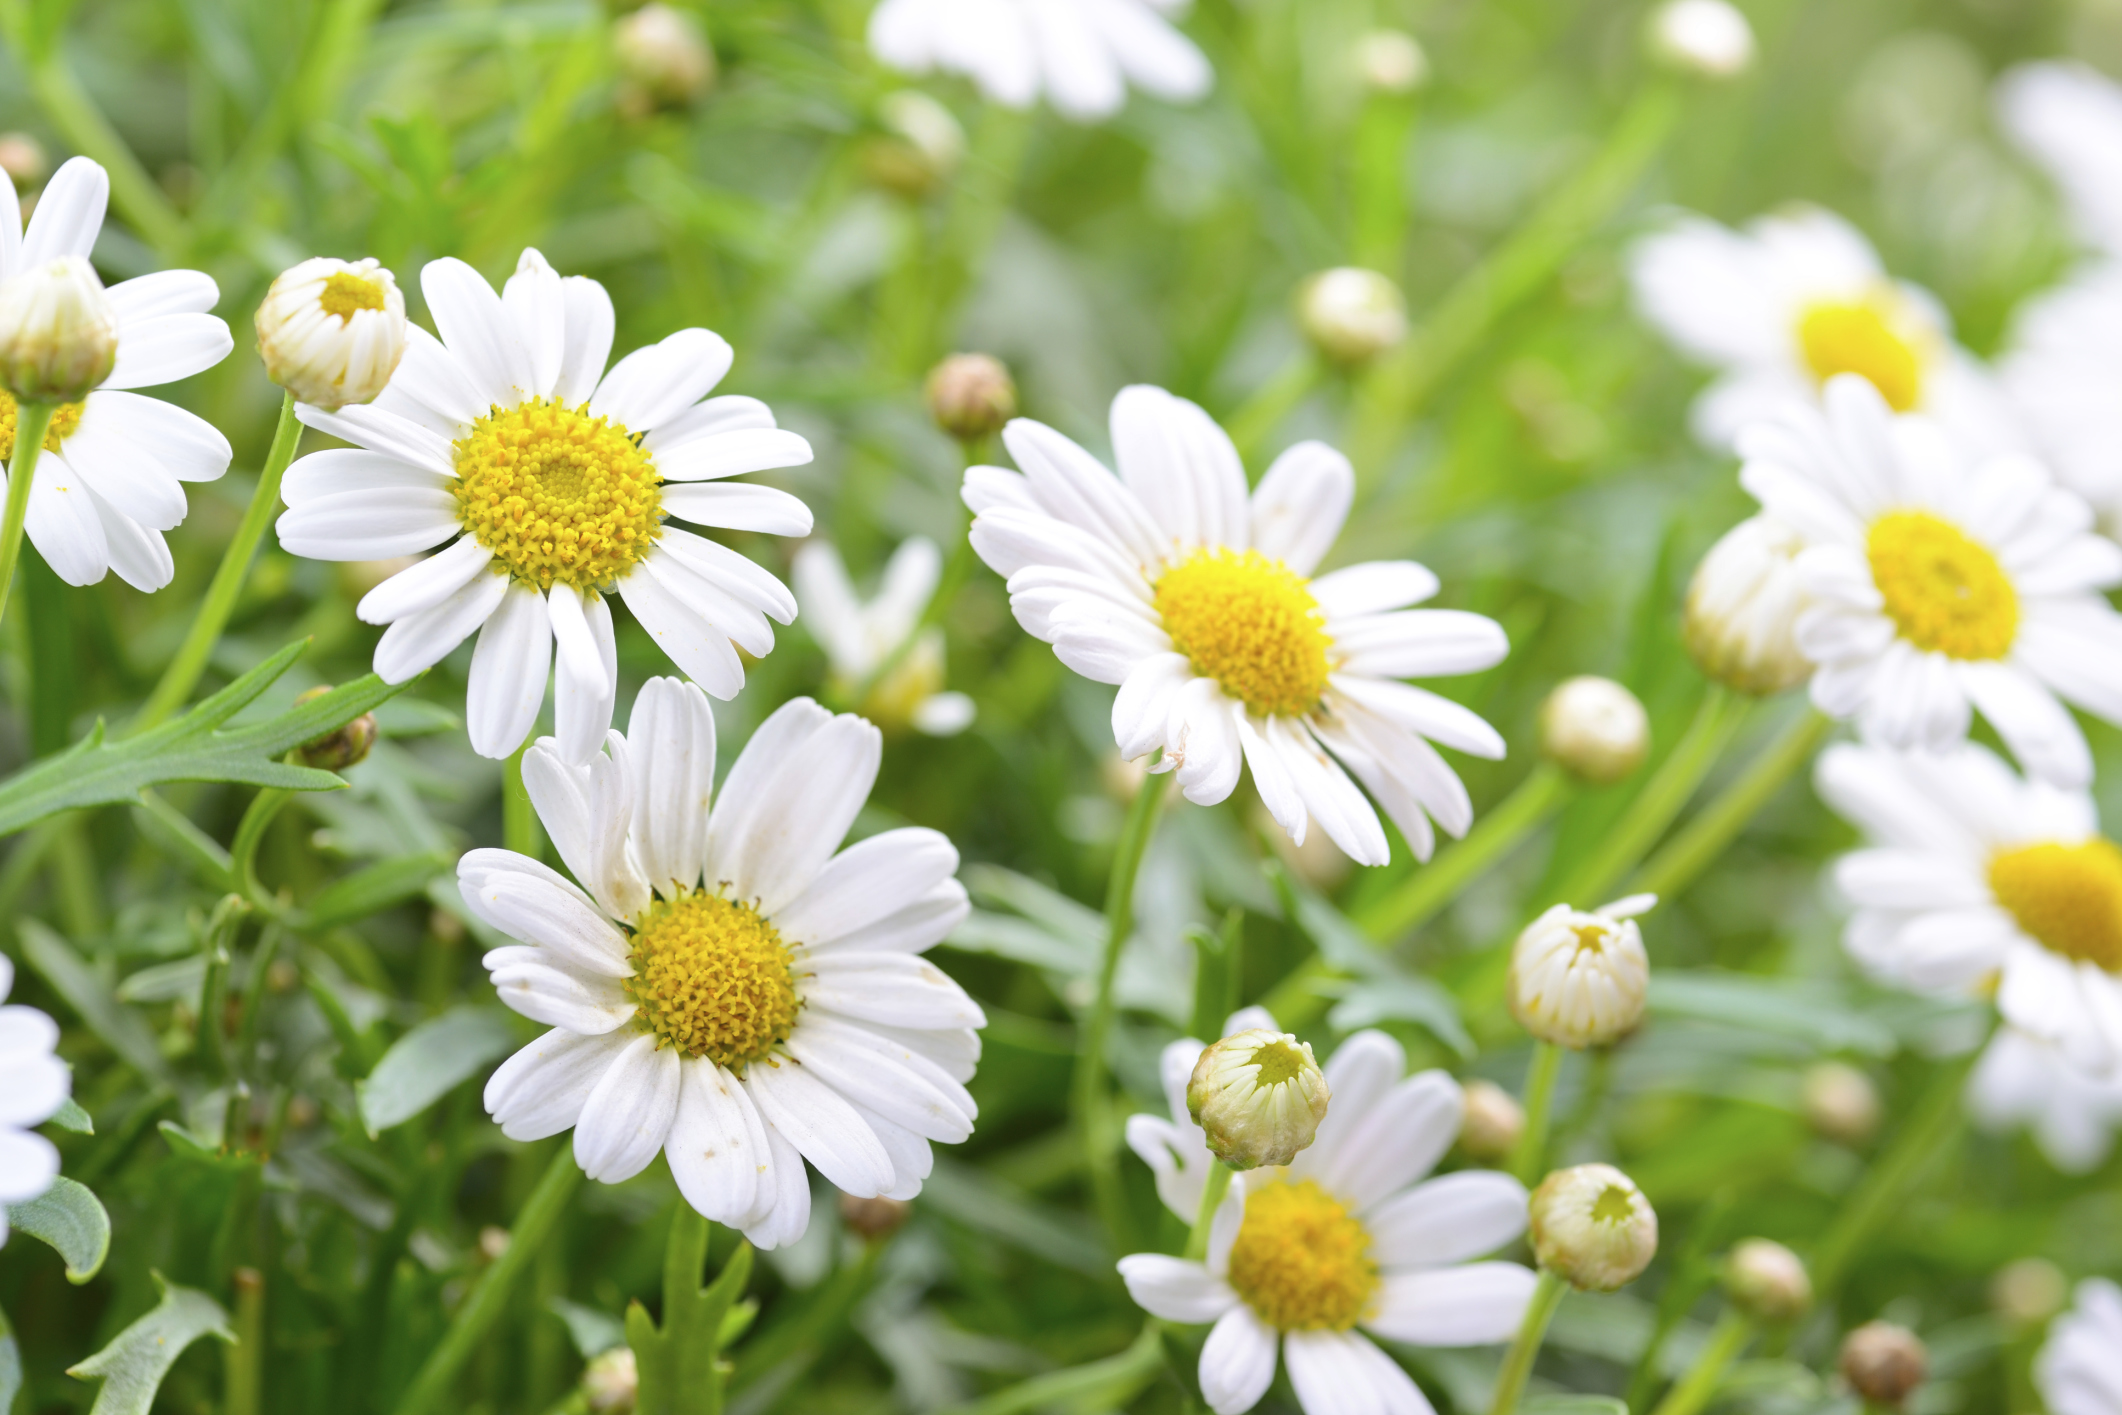 Famous white daisy flower meaning images wedding and flowers do you recognize these common flowers every adult should know izmirmasajfo Image collections